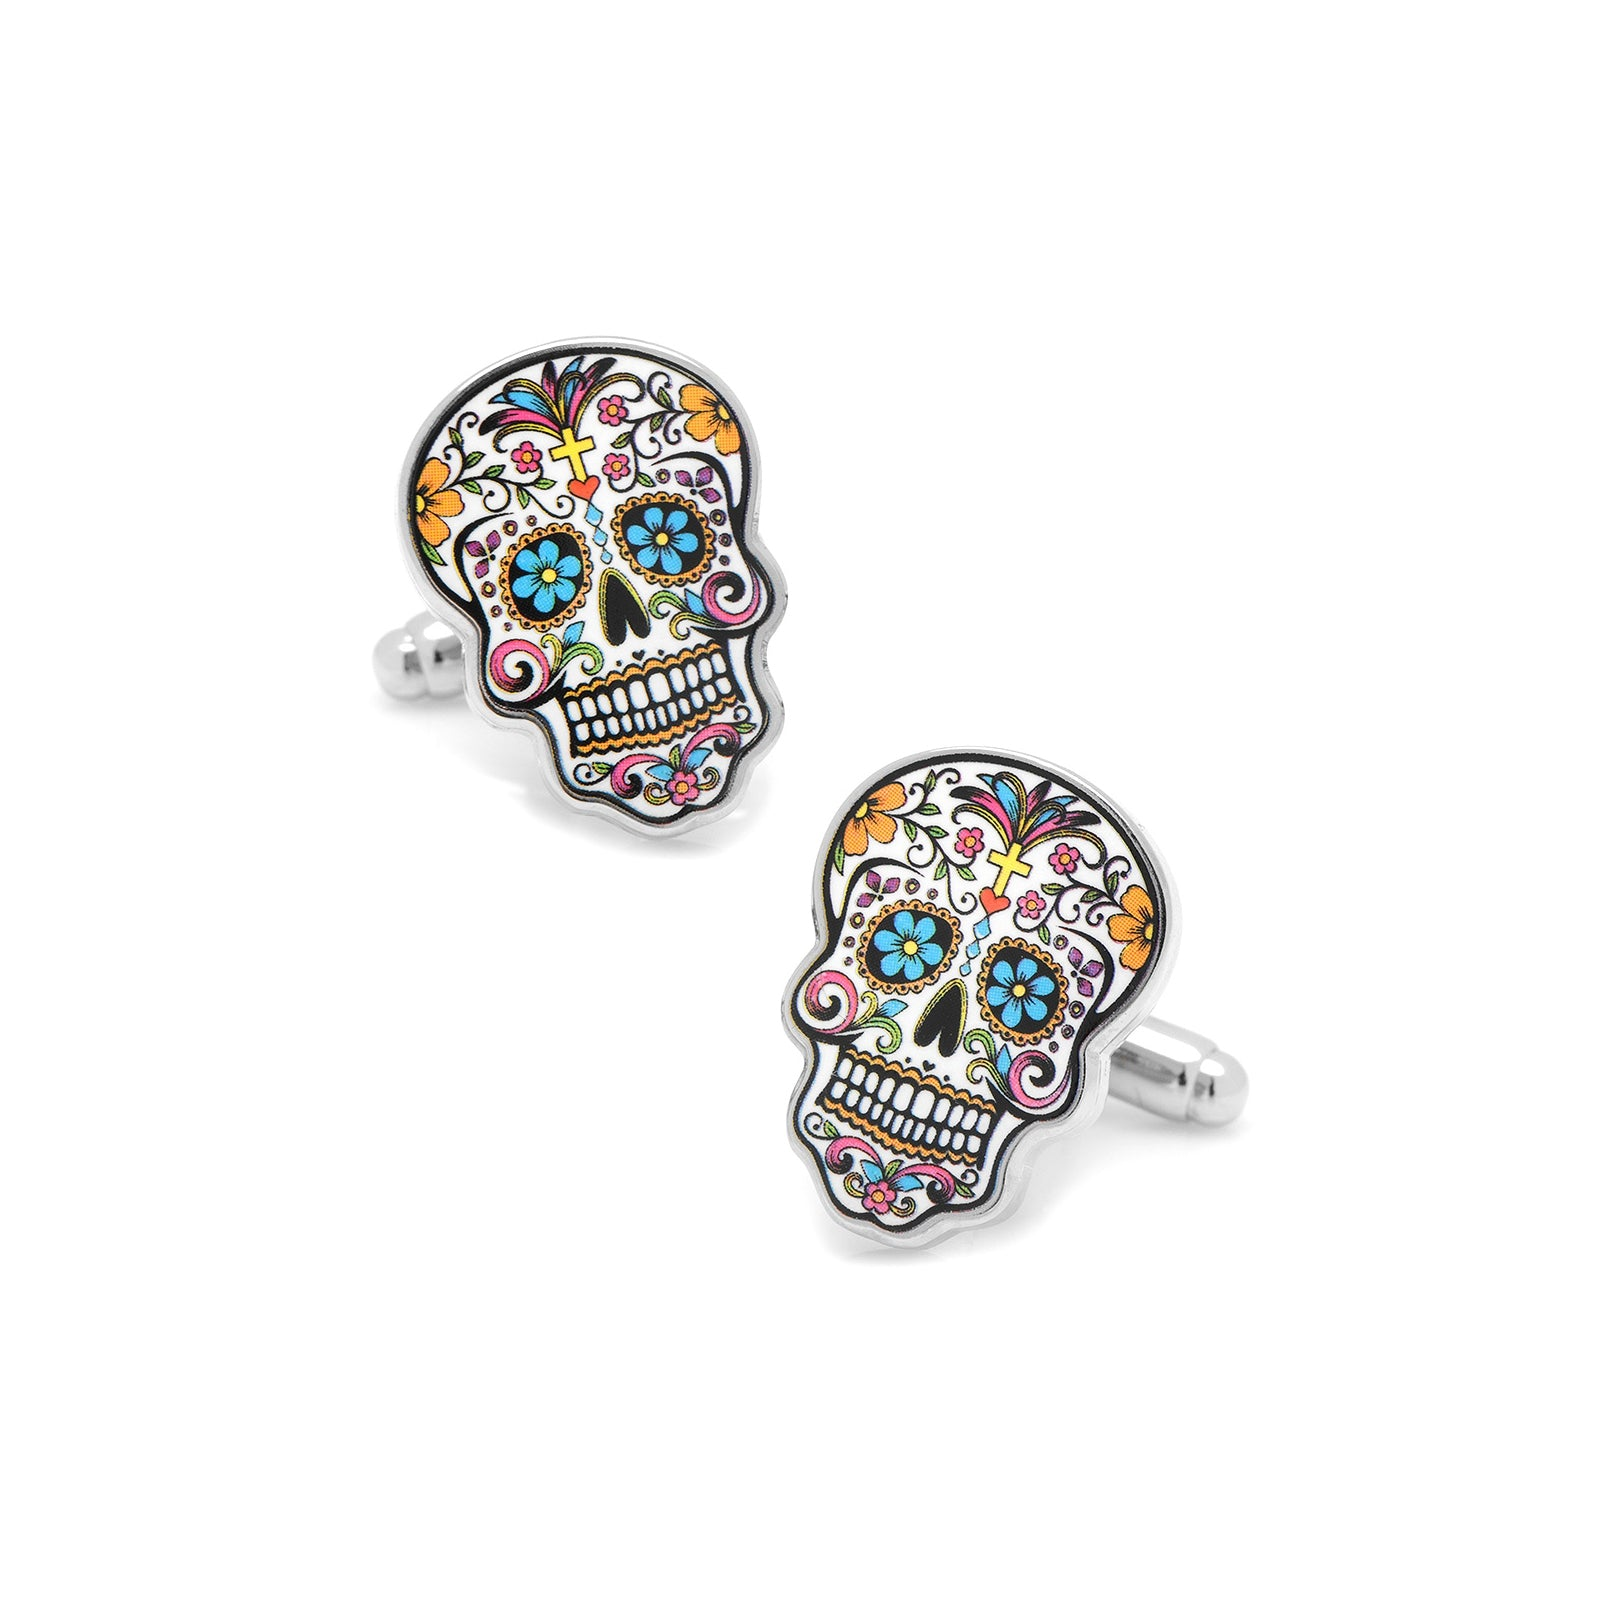 Day of the Dead Skull Cufflinks, Plated Base Metal